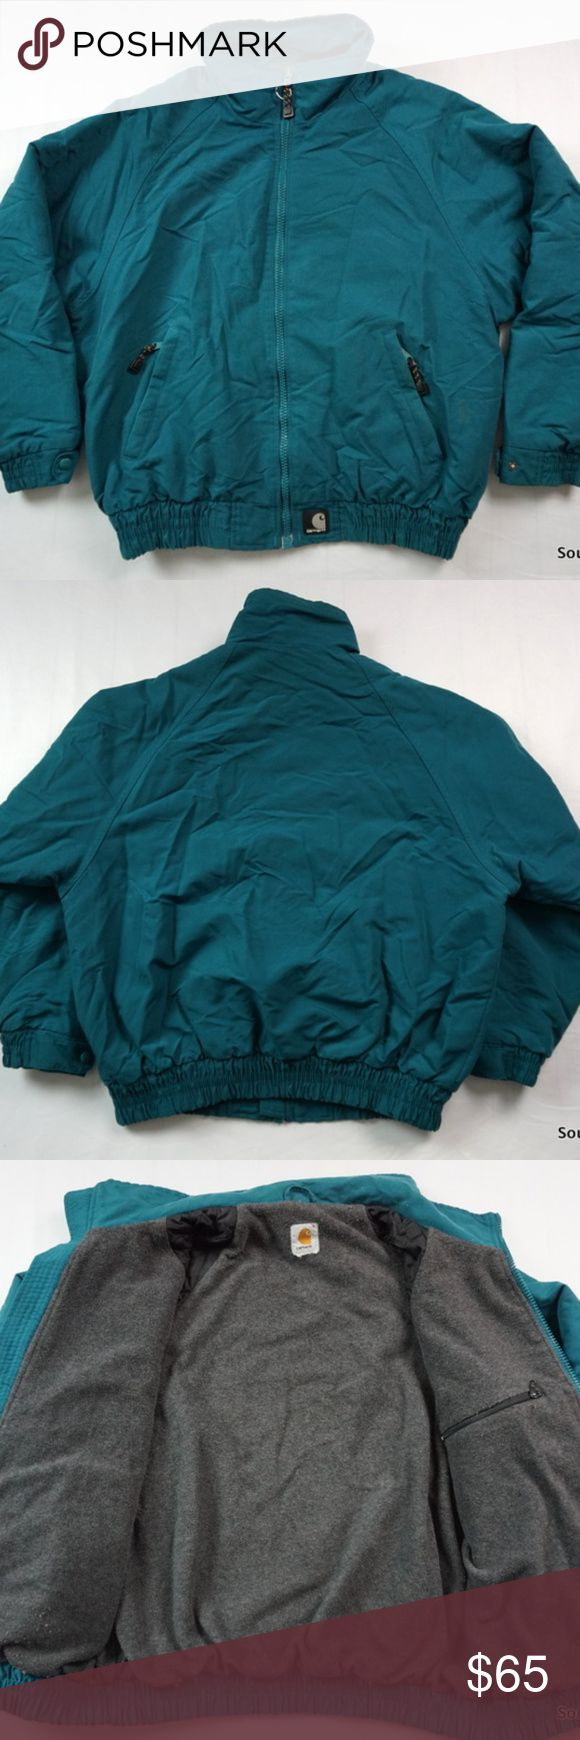 "90s Carhartt Winter Jacket Coat Green Men's Large Vintage 90s Carhartt Winter Jacket, Coat , Men's Large, L, Green, Fleece Lining, Warm, 90s Fashion  Brand:        Carhartt Size:           Men's Large Color:         Green Material:   Shell Nylon, Lining Polyester  Detailed Measurements: (Front Side of Garment has been measured laying flat on a table)  Sleeves:    31"" inches  Chest:       26"" inches Length:     28"" inches Carhartt Jackets & Coats"